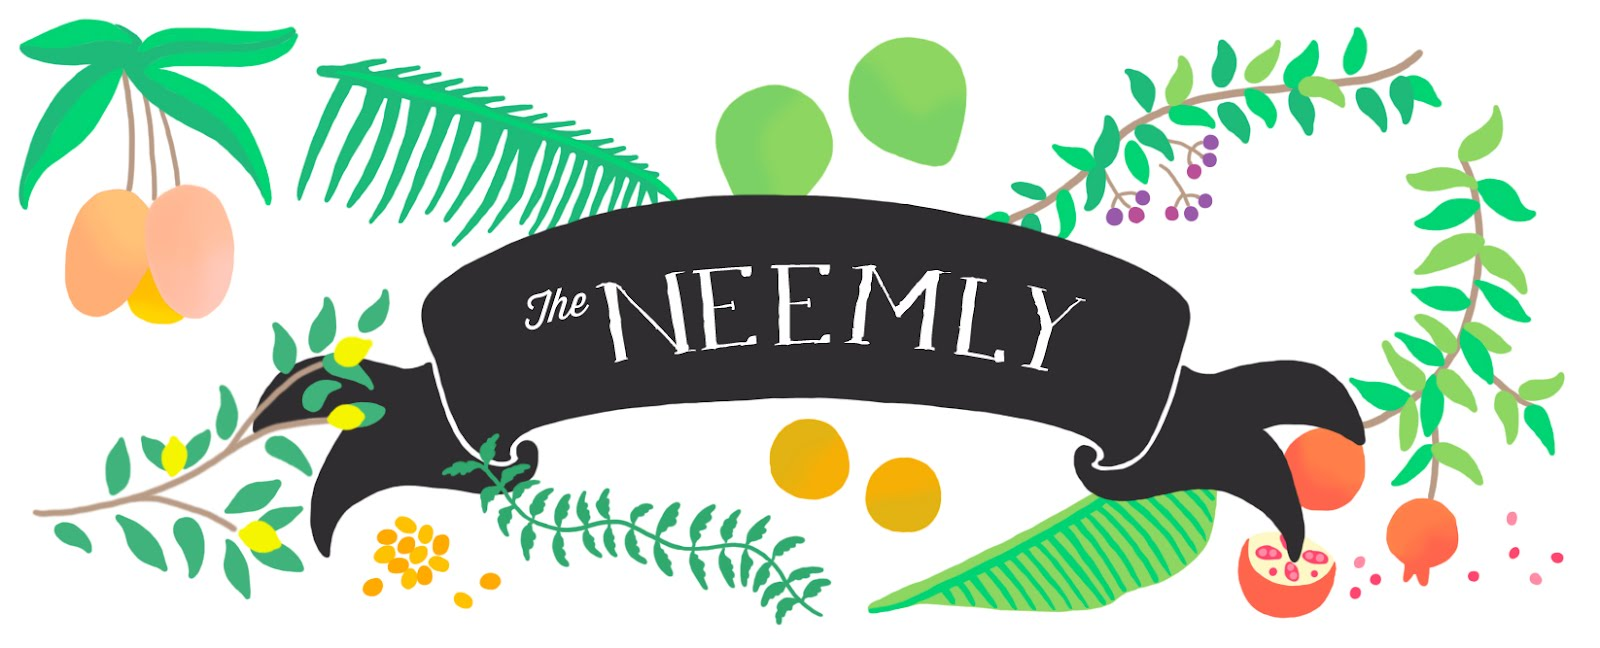 The Neemly